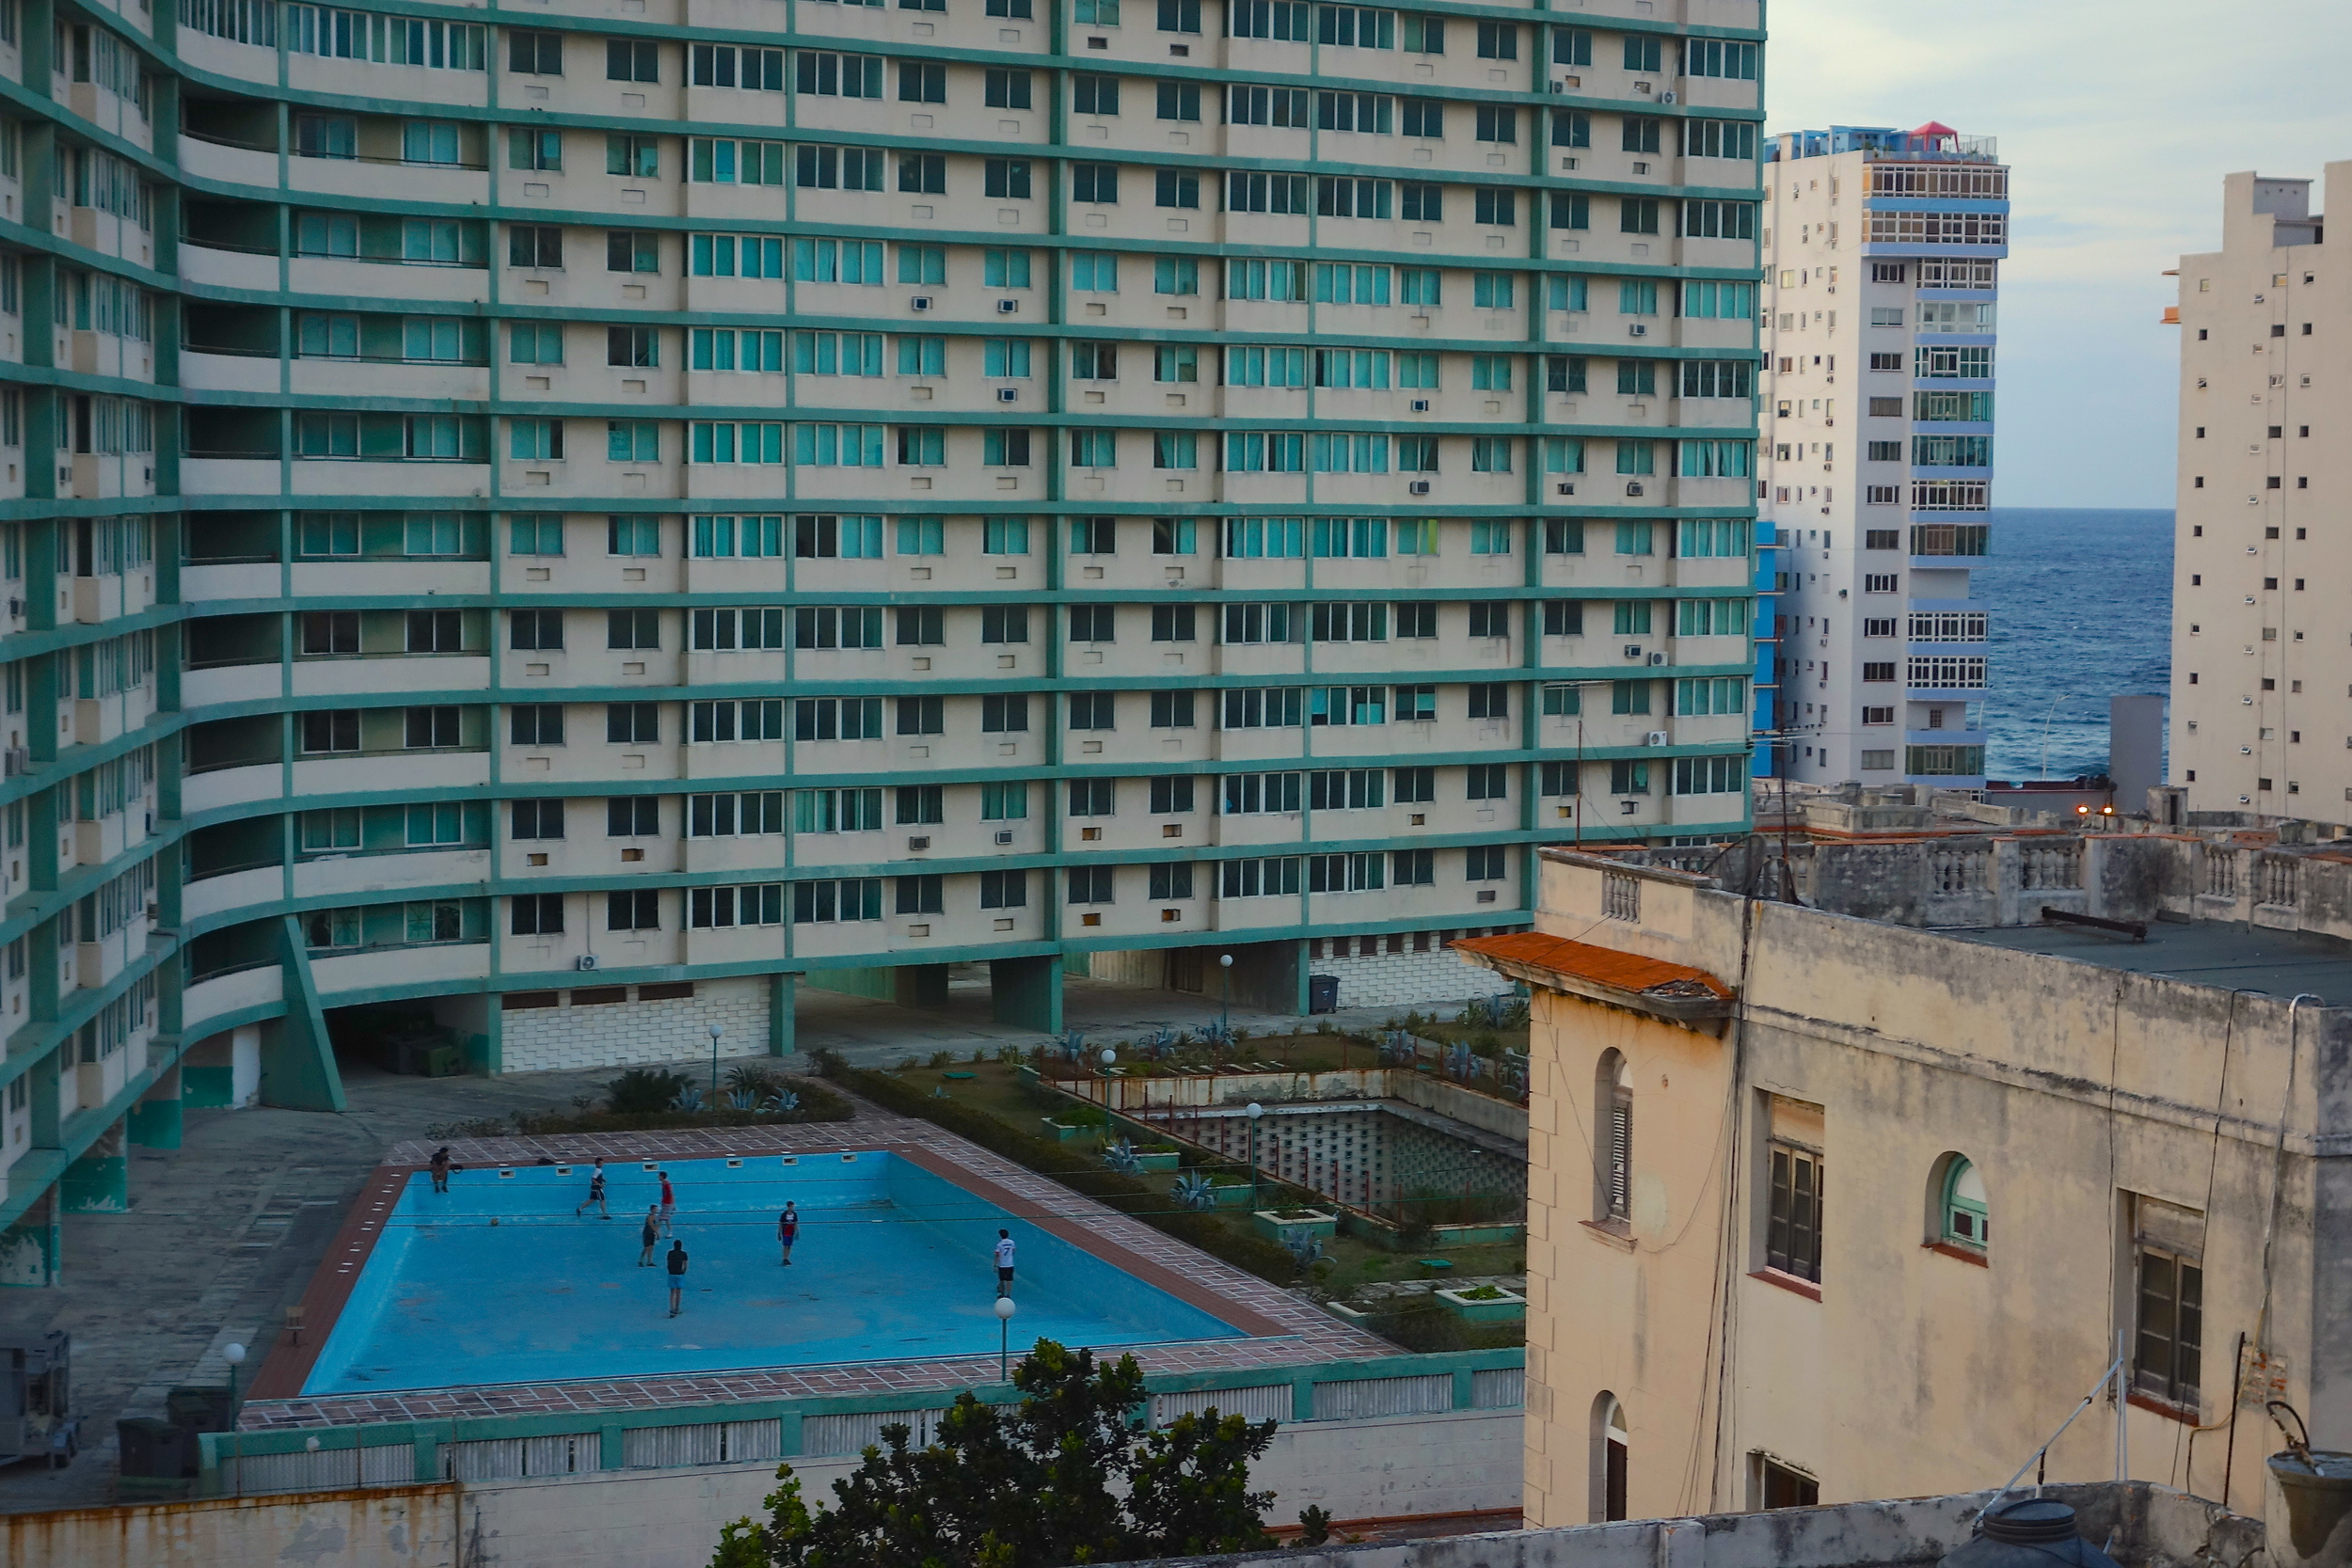 Our view from Cafe Laurent: Kids play soccer in the empty pool of the Riviera Havana, a ghost of the mid-century glamour that once defined Havana.